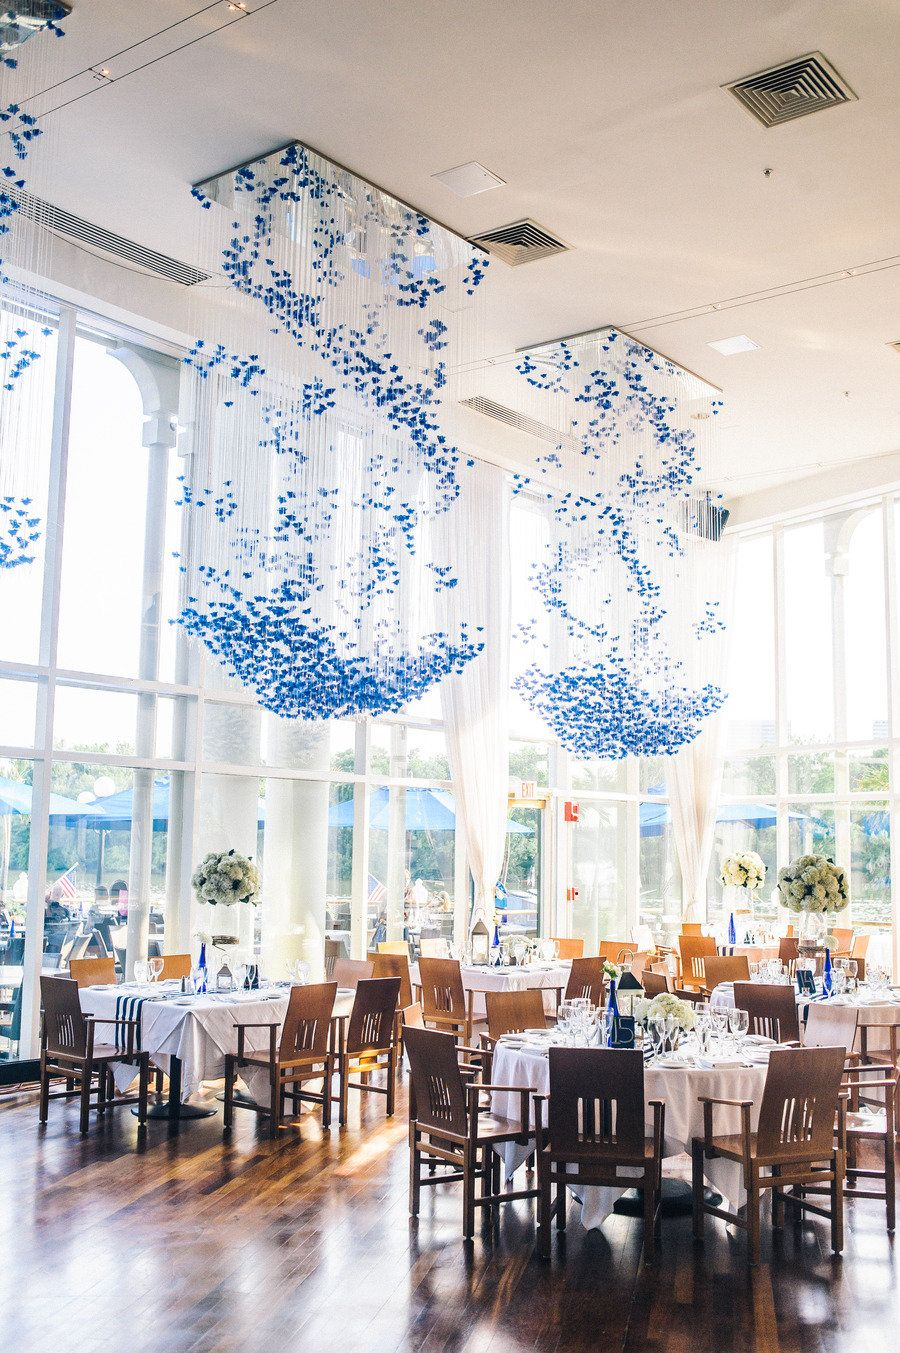 wedding reception space with modern chandeliers